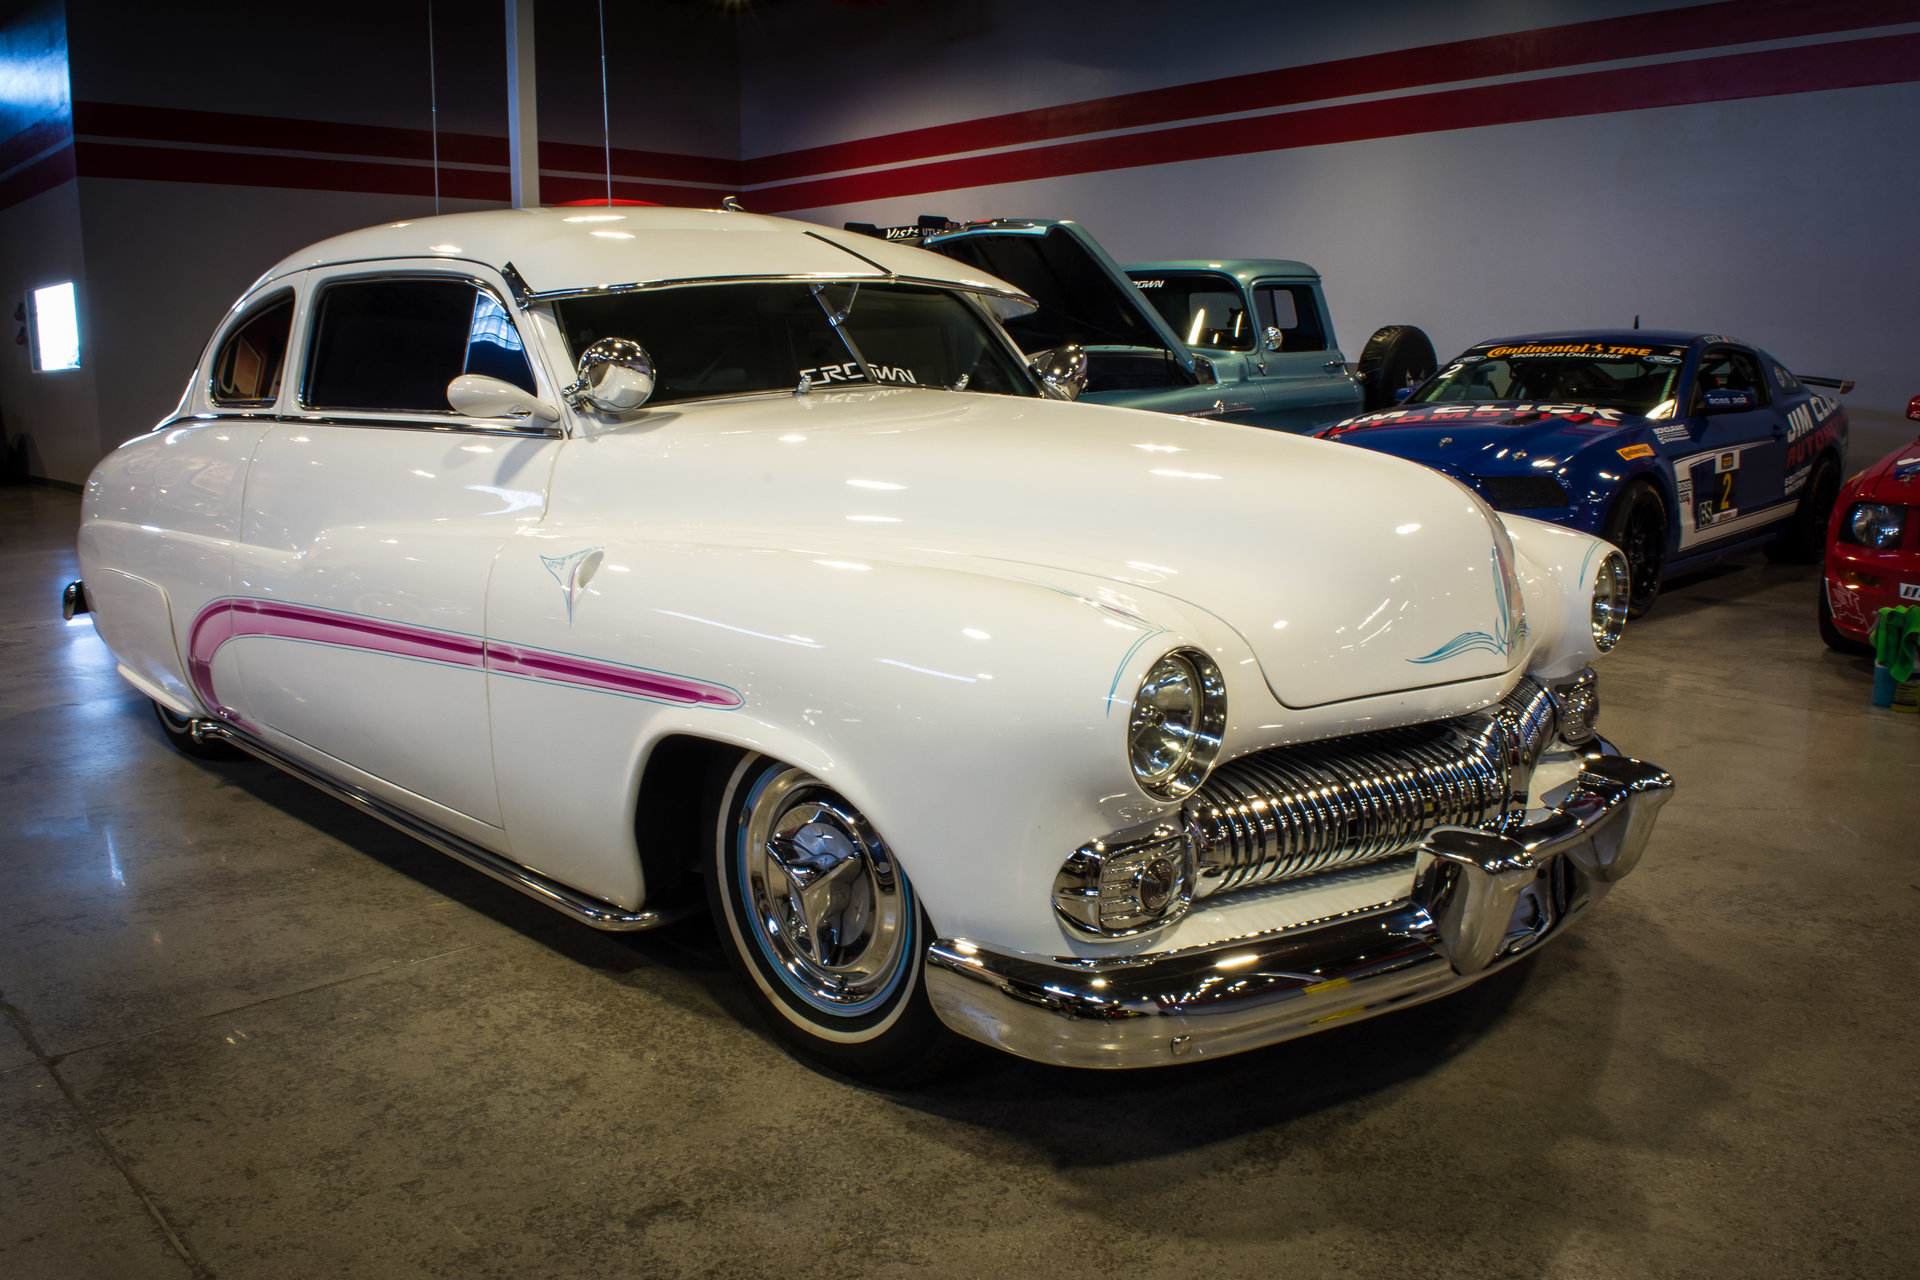 Cars For Sale Reno Nv >> 1950 Mercury Coupe for sale #93026 | MCG